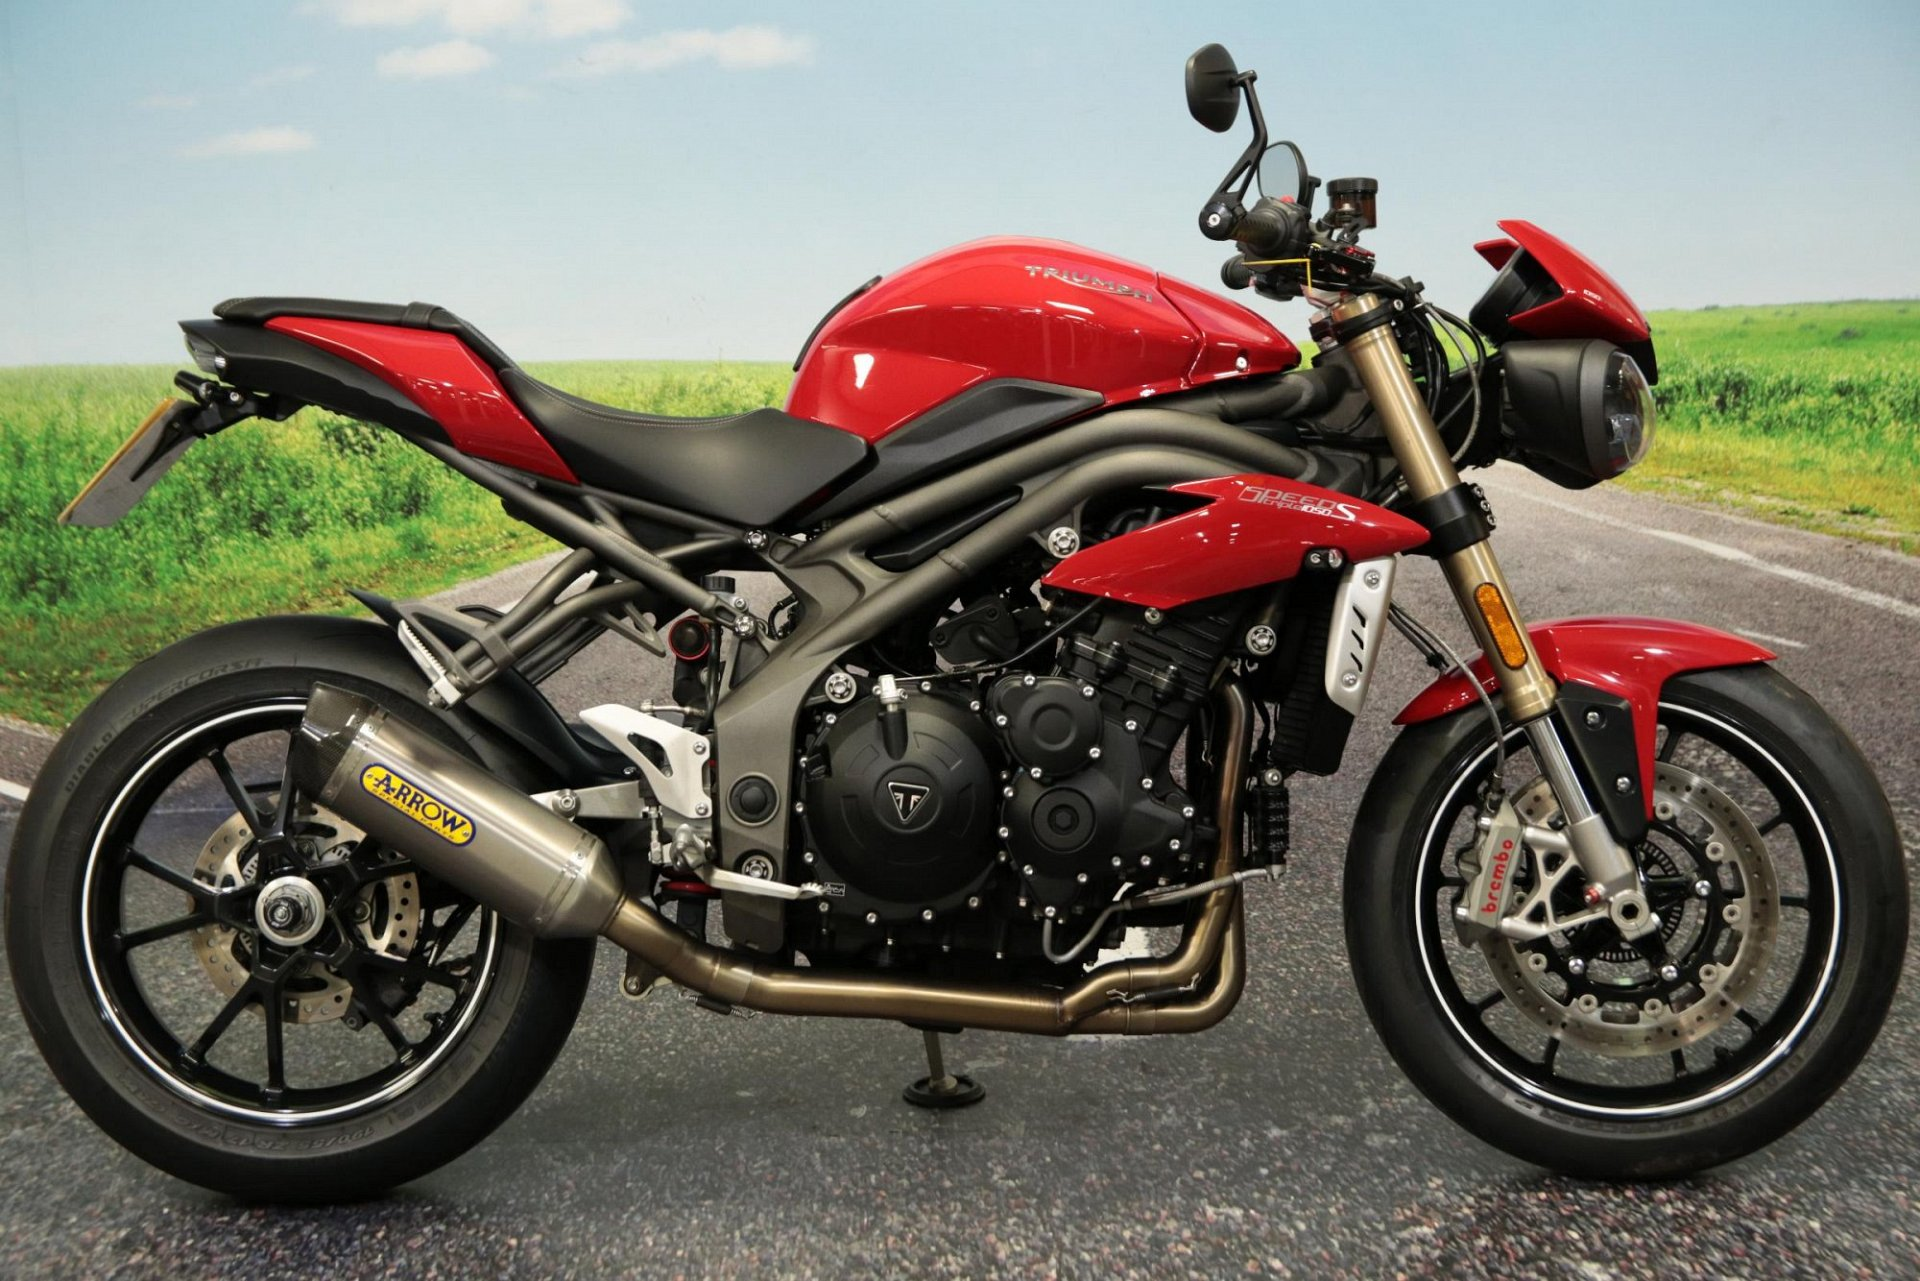 2018 Triumph Speed Triple S for sale in South Wales